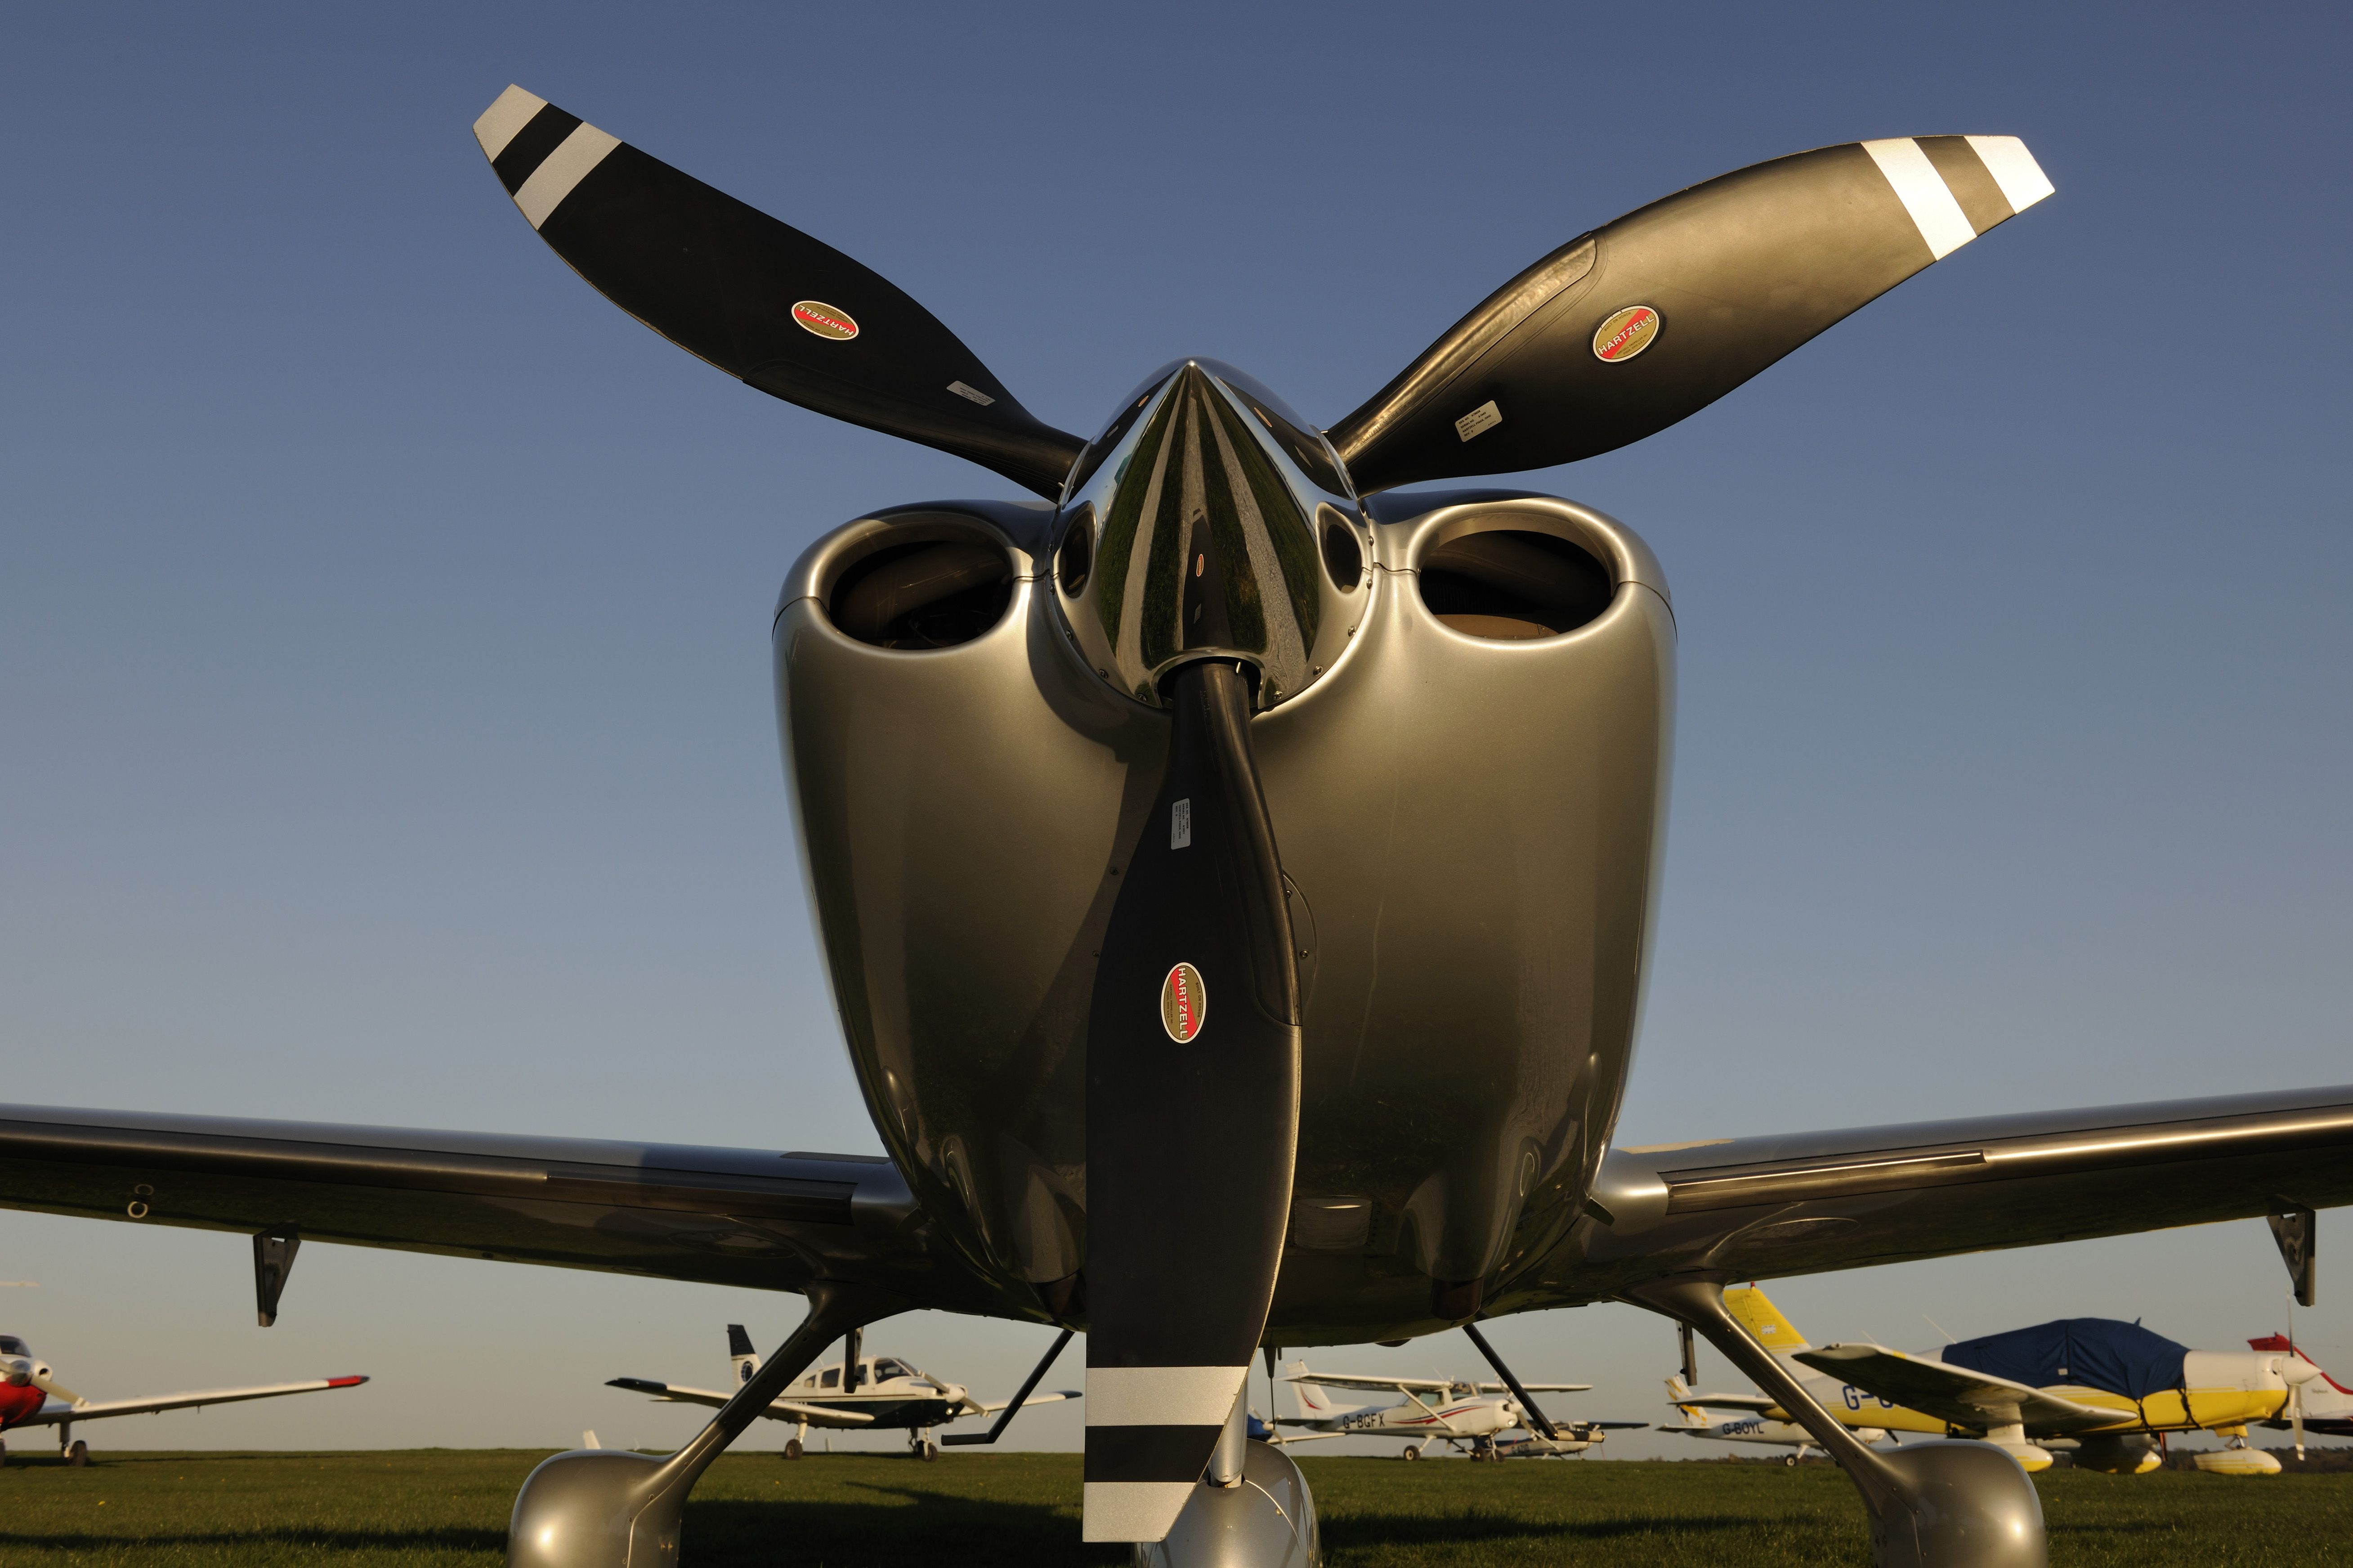 How to Become a Pilot - Learning to Fly a Plane